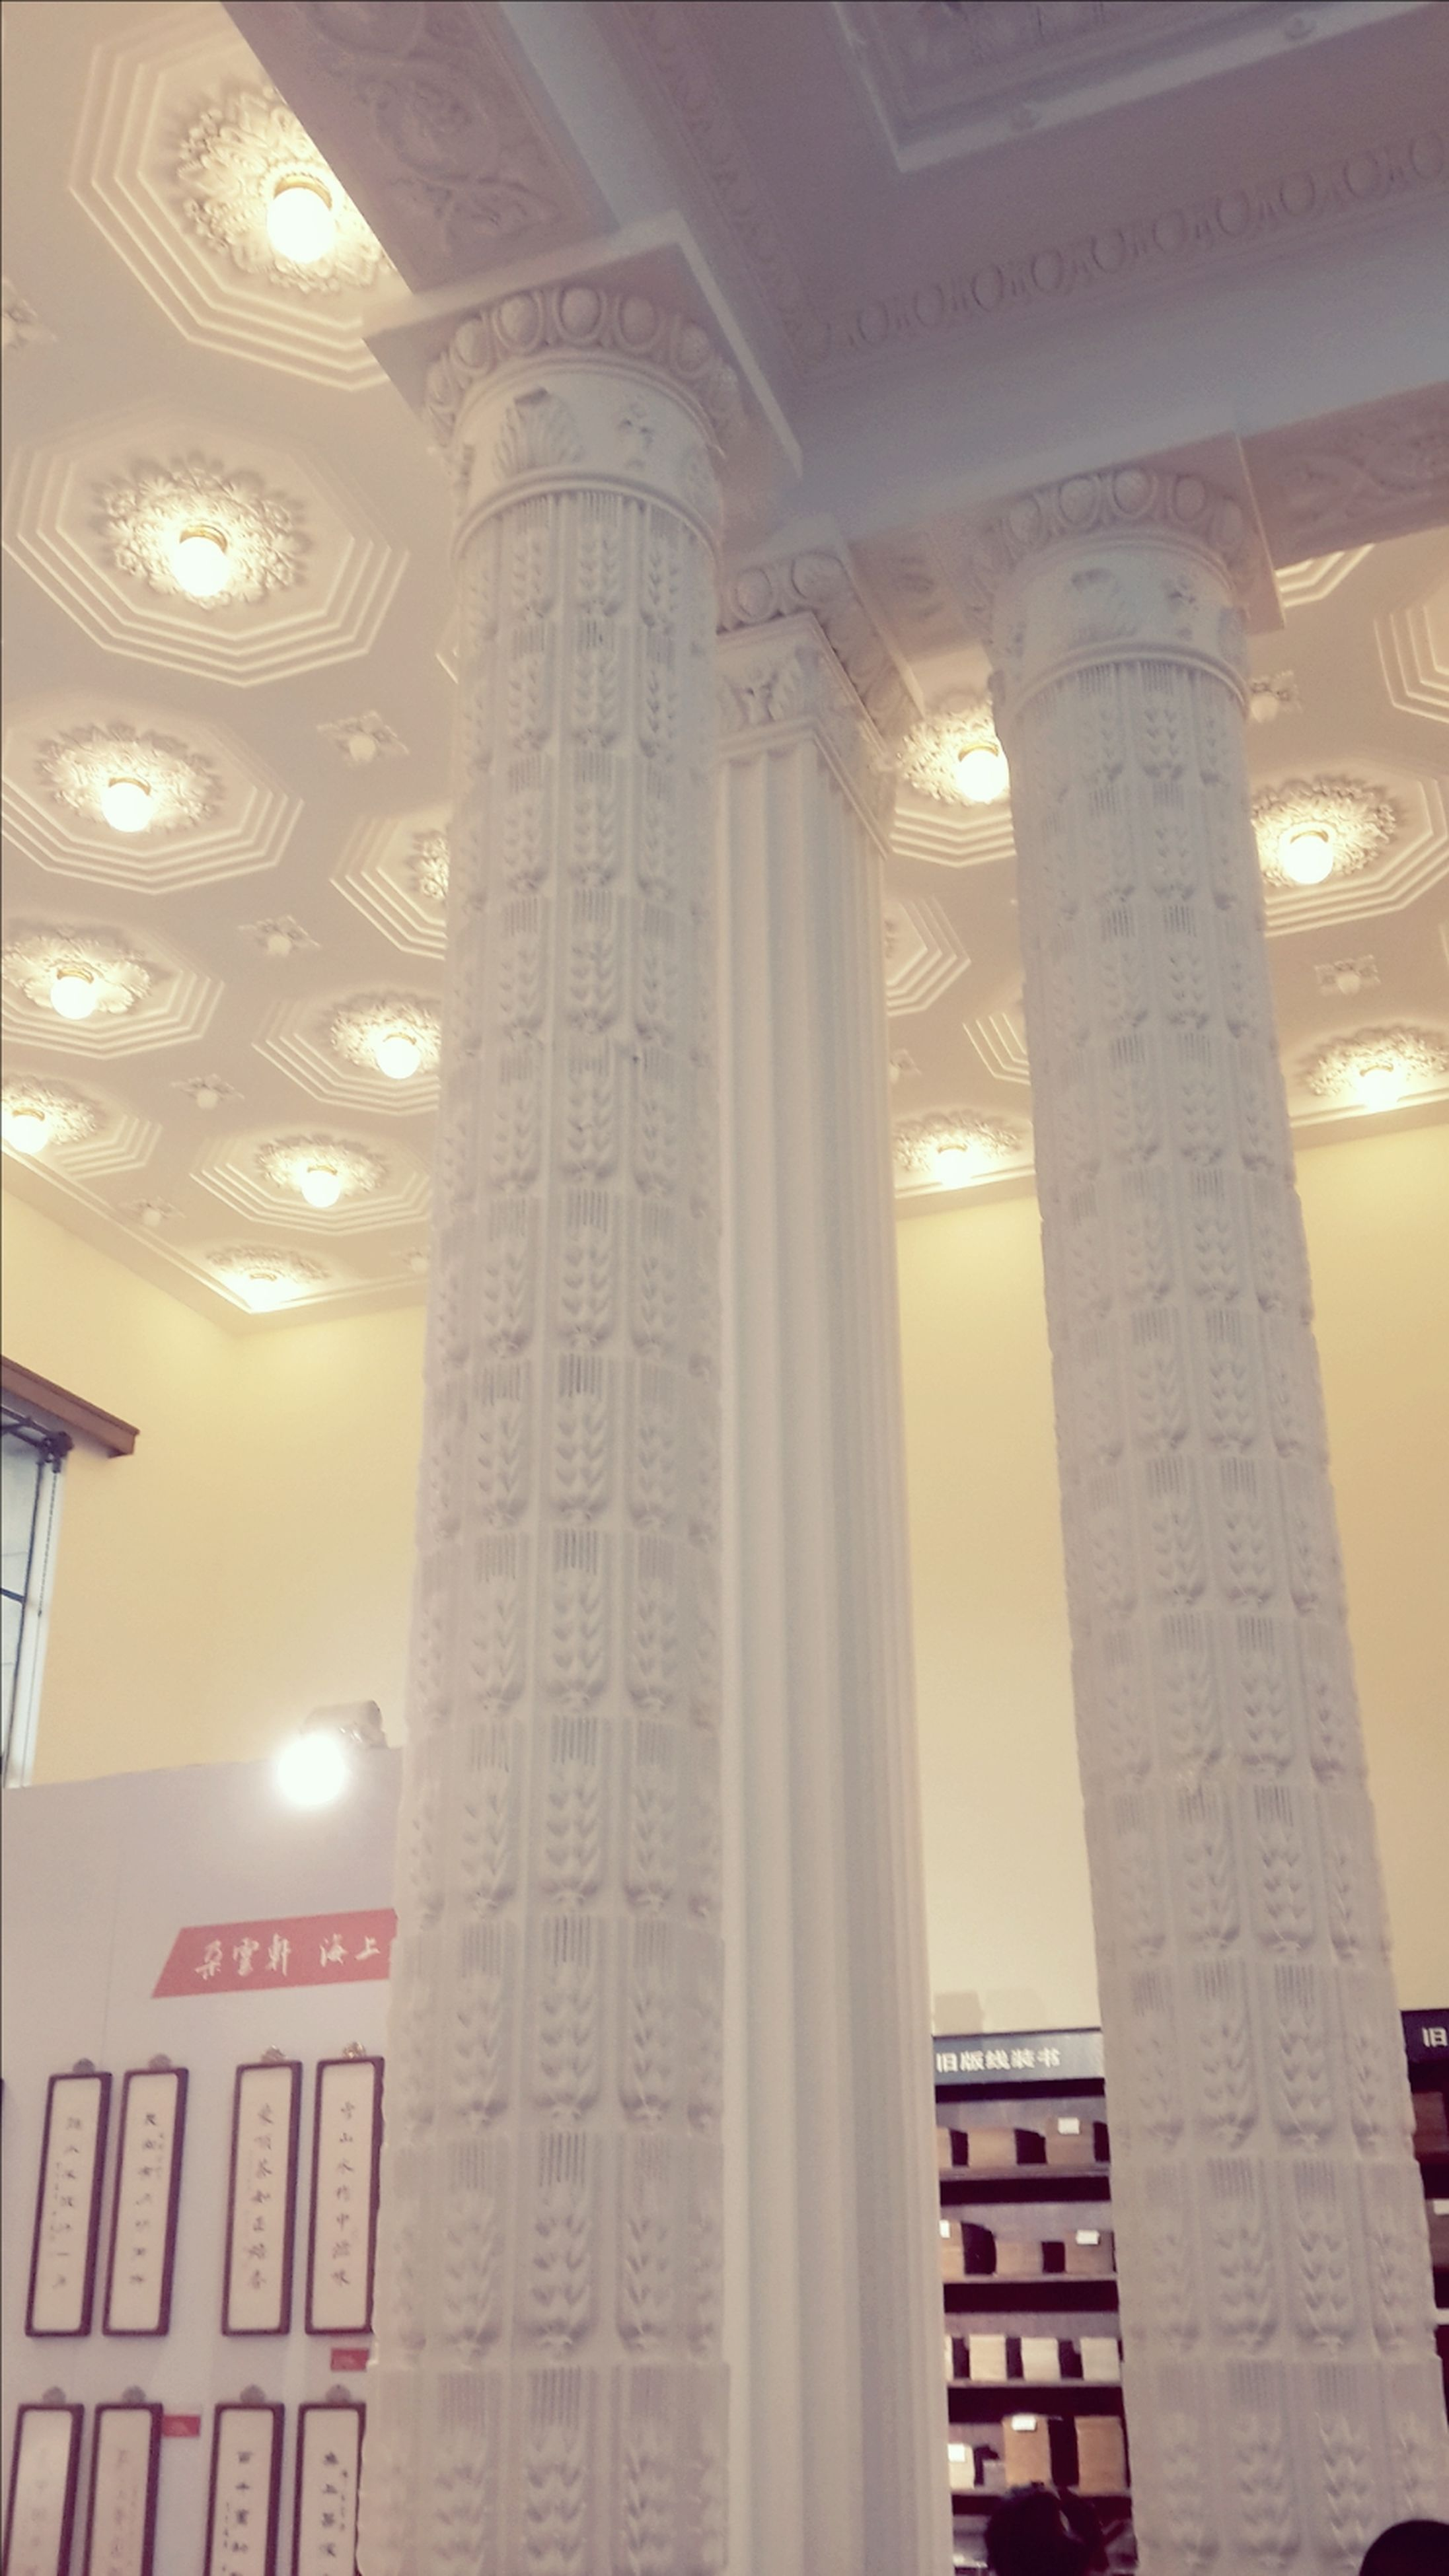 architecture, indoors, built structure, low angle view, architectural column, illuminated, ceiling, lighting equipment, religion, column, architectural feature, interior, history, building, building exterior, spirituality, no people, famous place, place of worship